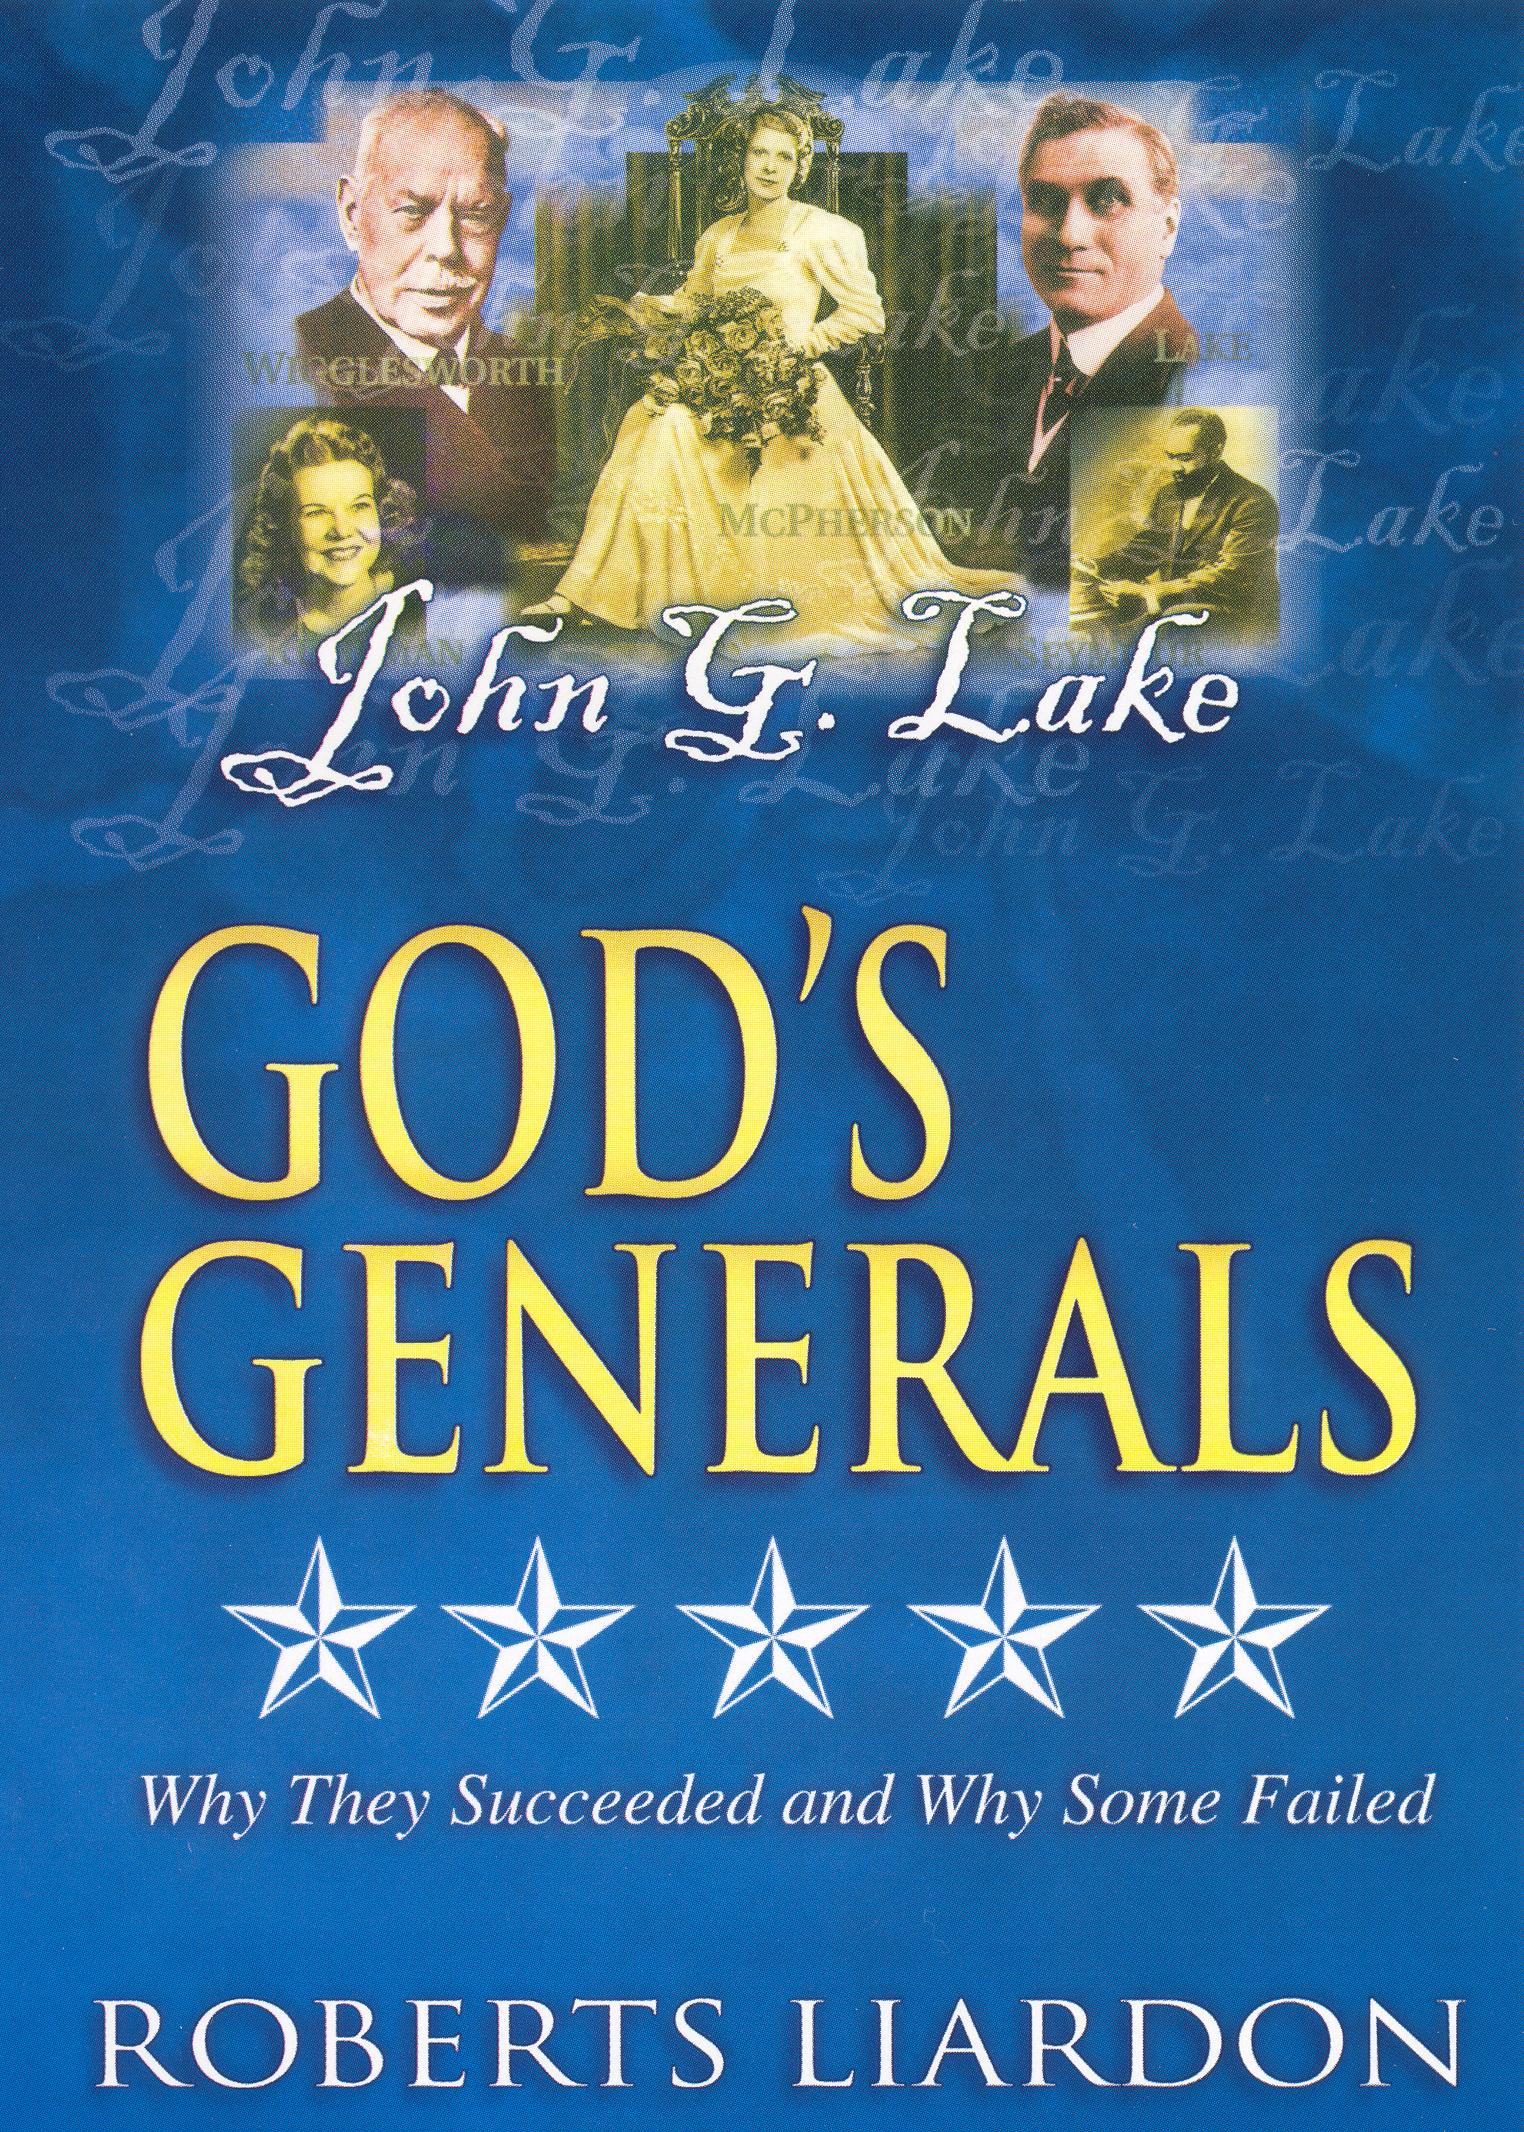 God's Generals: John G. Lake - A Man of Healing